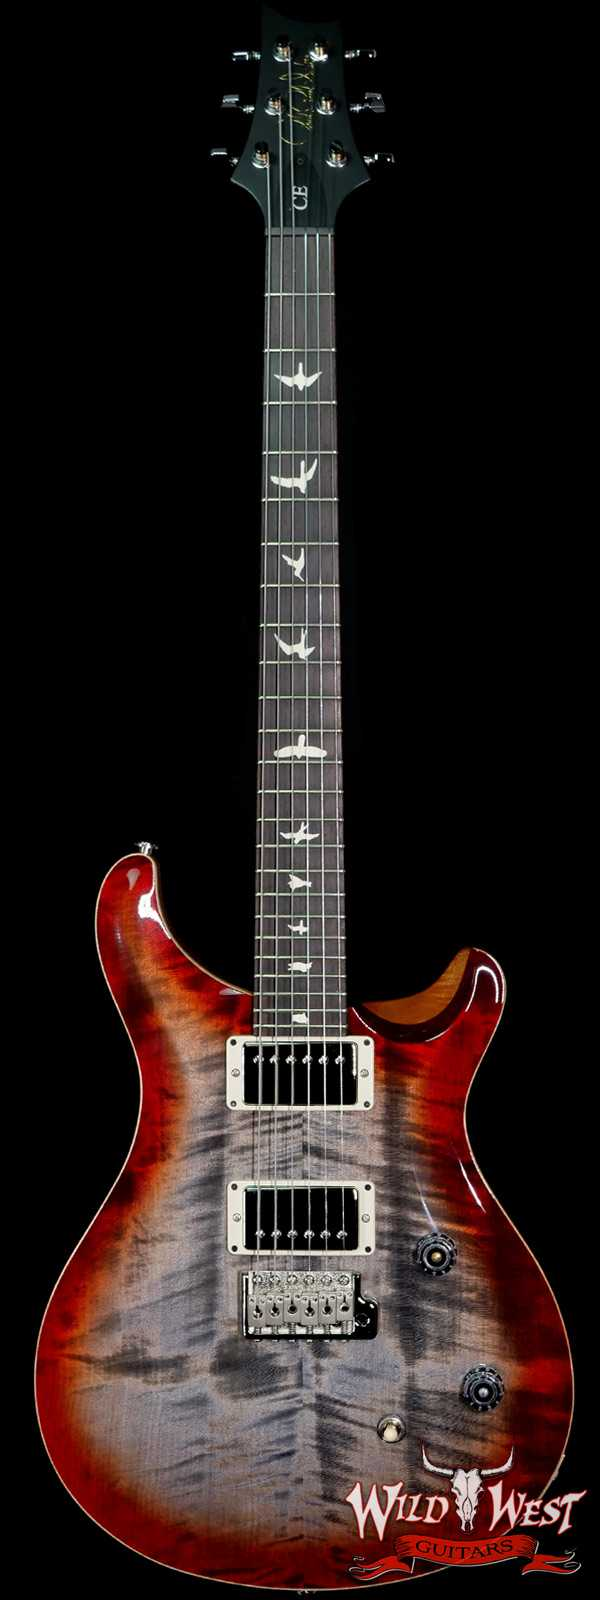 PRS Wild West Guitars Special Run Flame Top Black Neck CE 24 Faded Gray Black Cherry Burst 318382